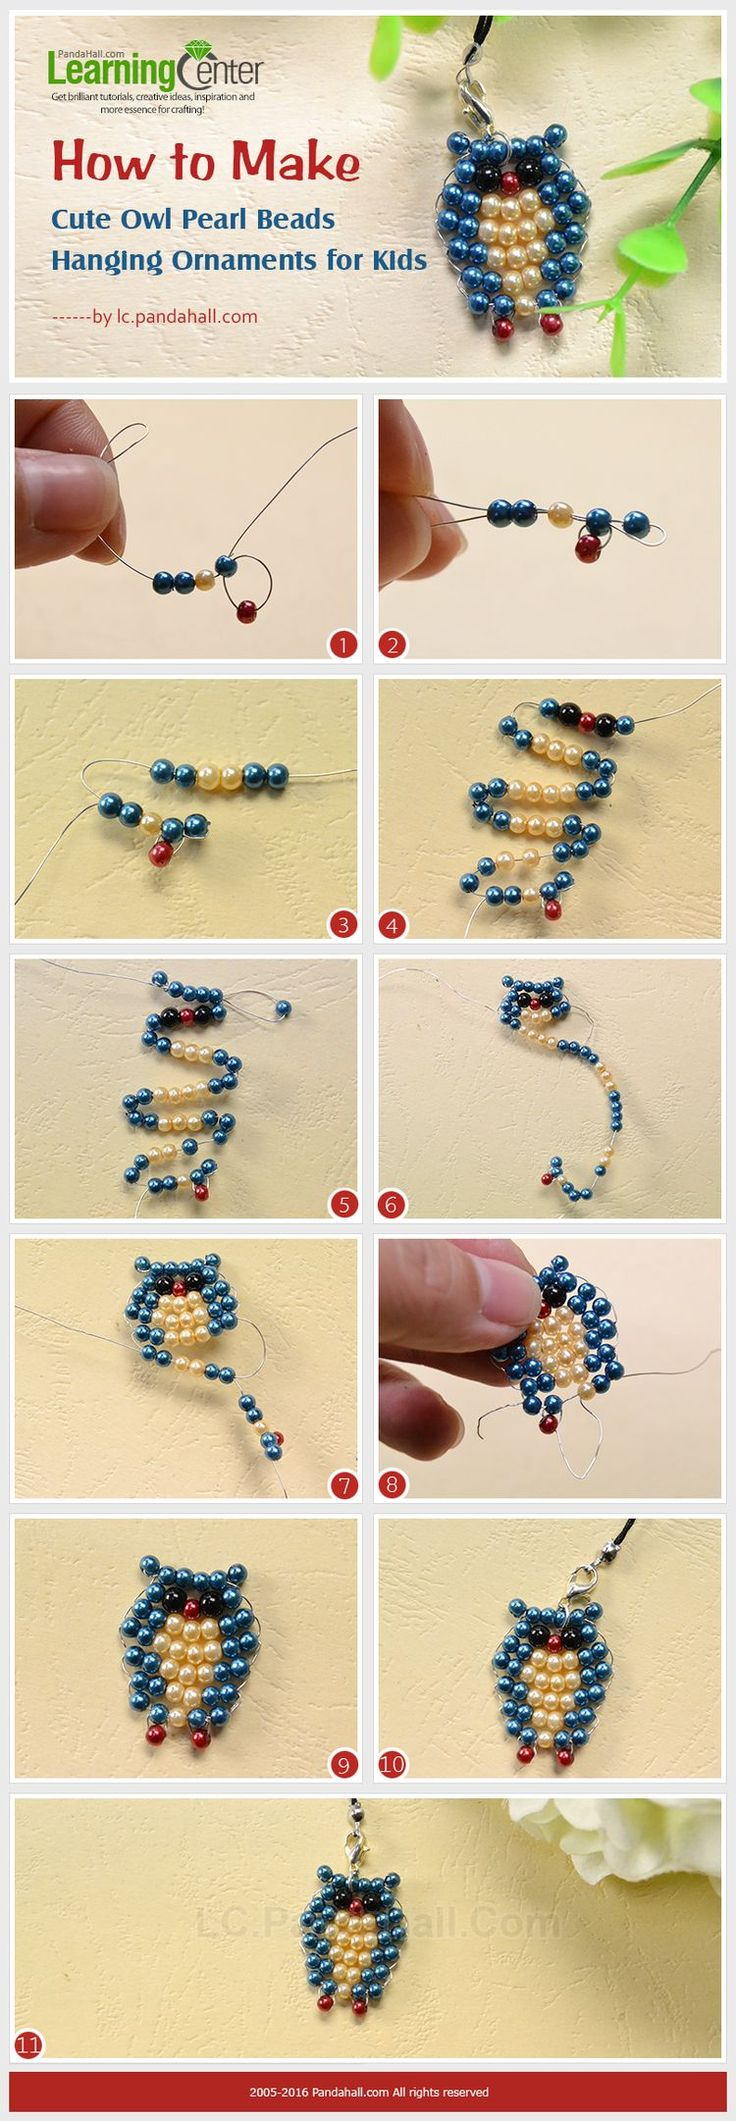 67 Best Beadwork Images On Pinterest Seed Beads Bead Jewelry And Copper Electrical Wiring Stranded Wireedit 442480da891e63f3ff3bbc5065c86707 7502162 Pixels